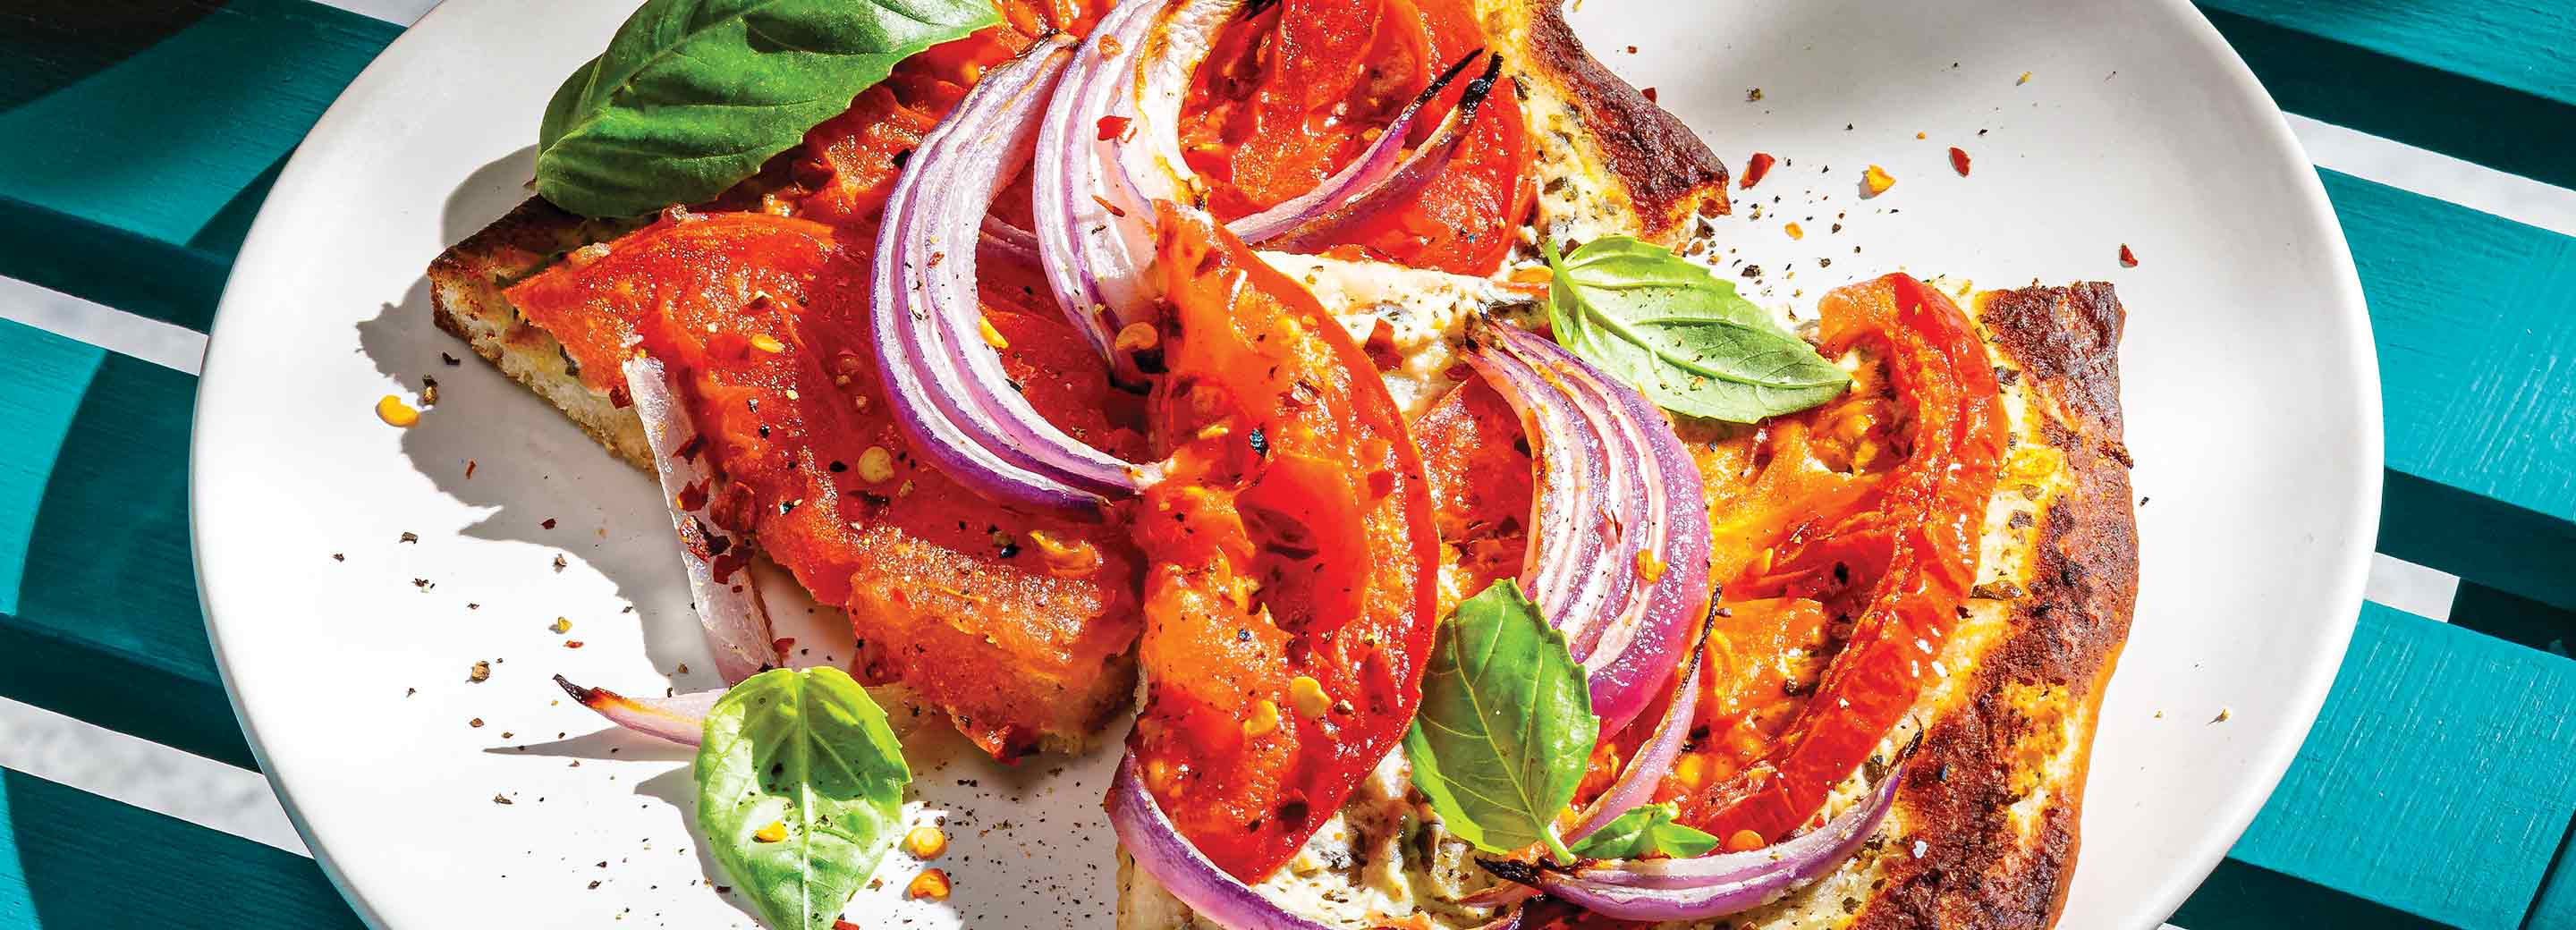 Chilled Summer Tomato Pizza